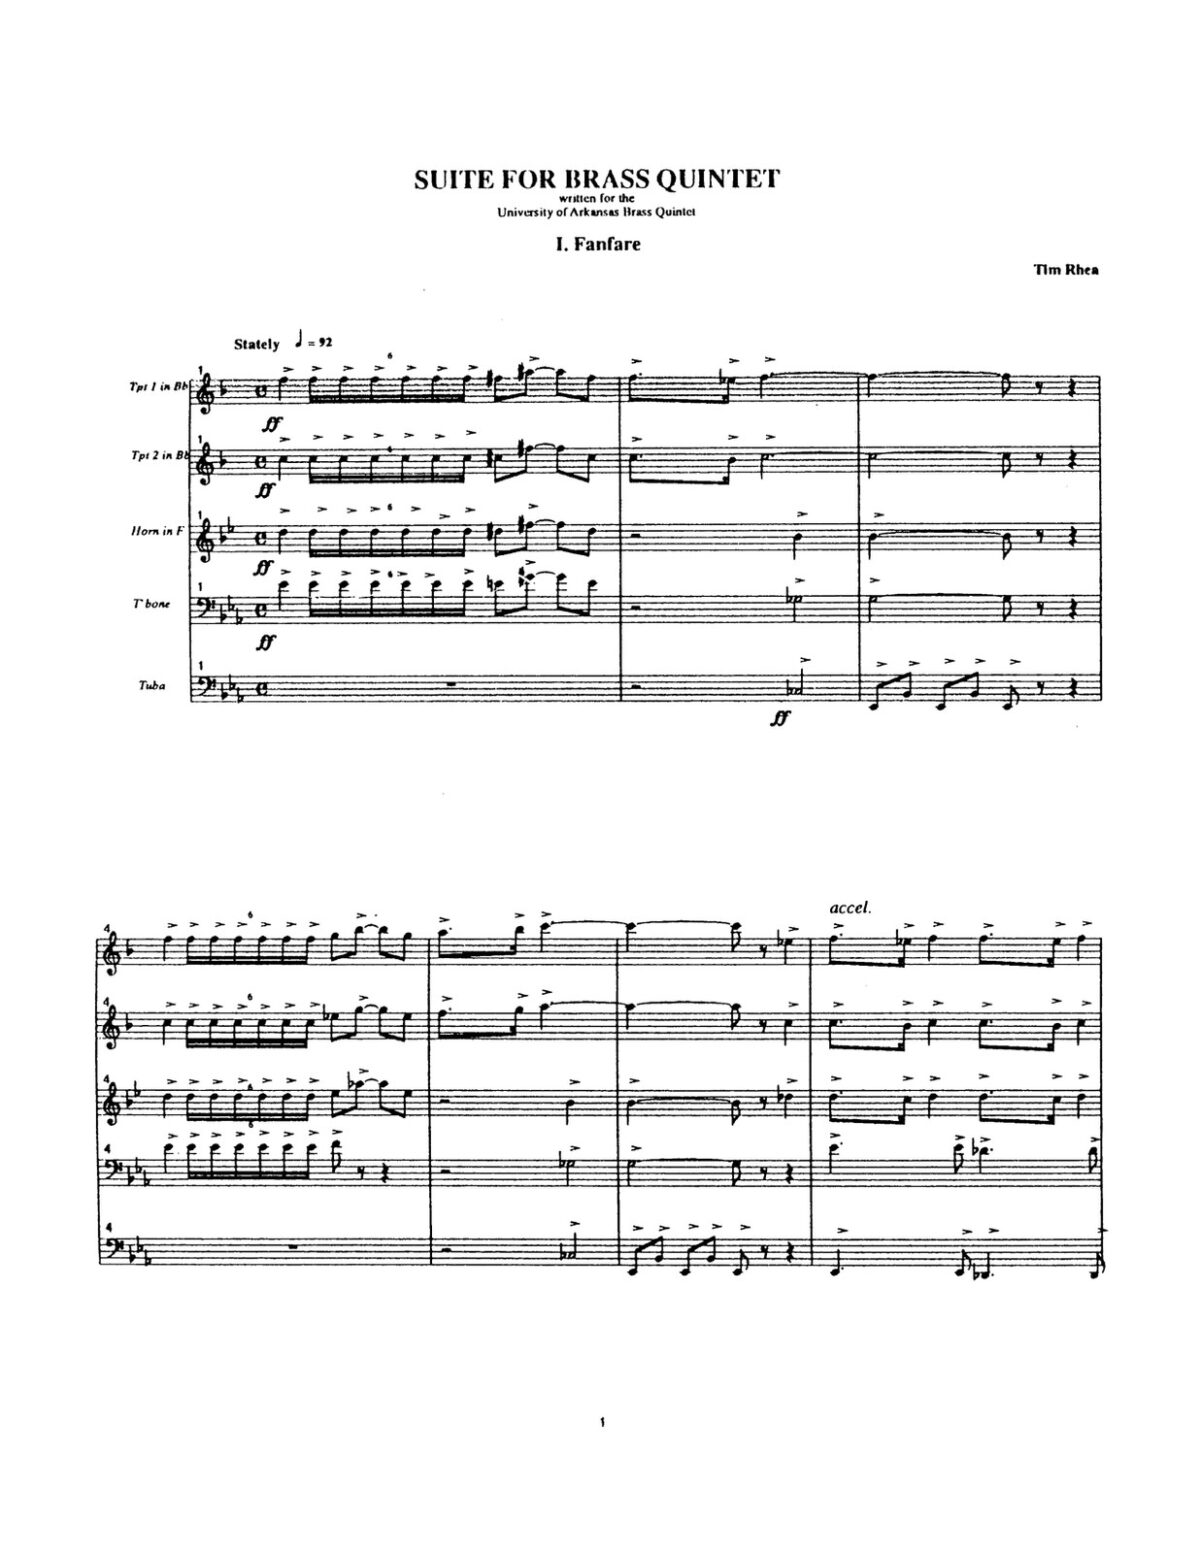 Rhea, Suite for Brass Quintet-p39